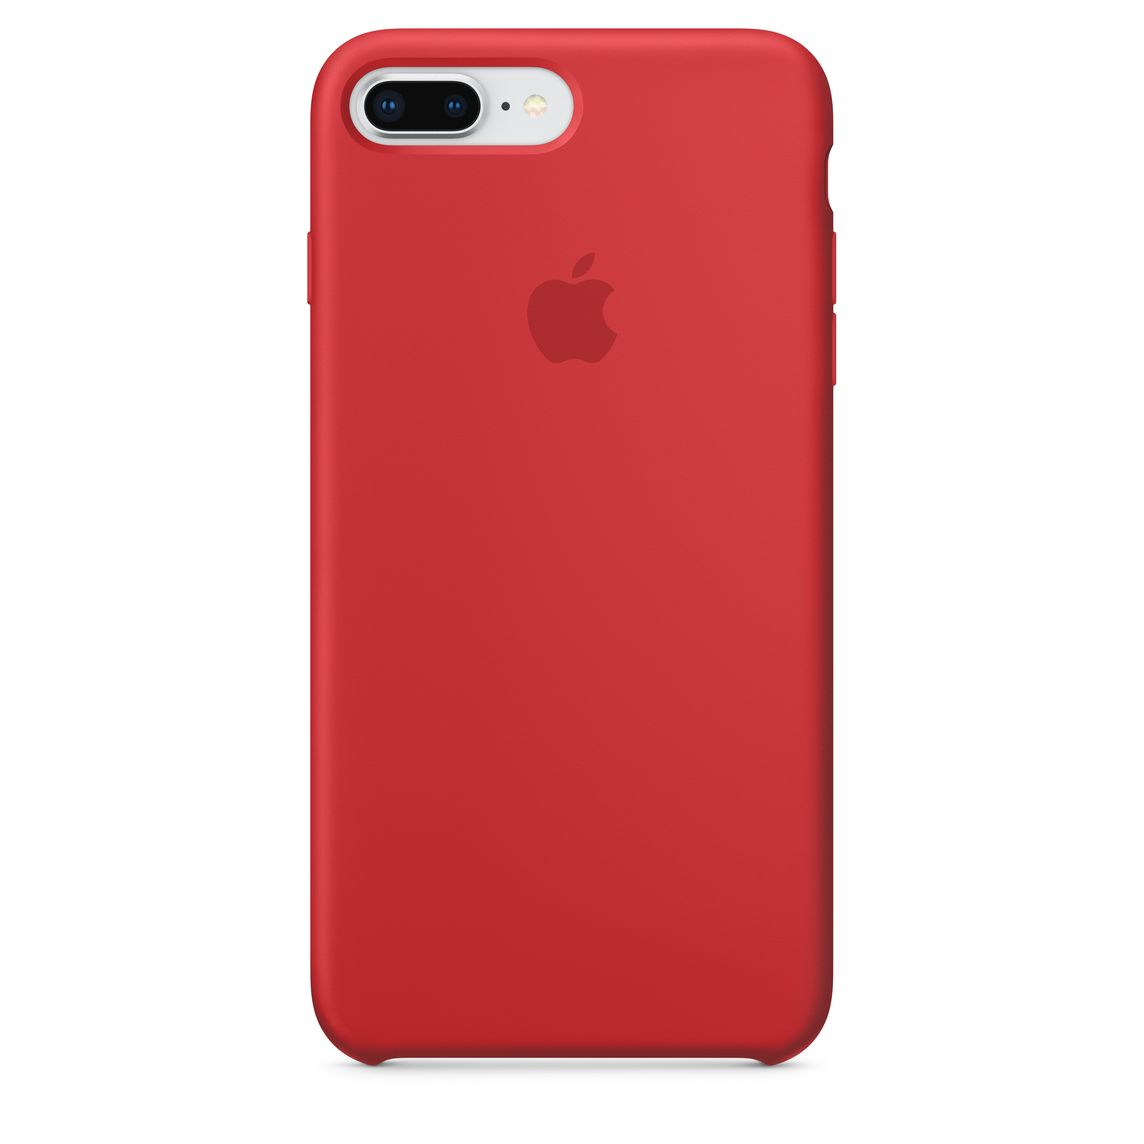 8 iphone plus cases